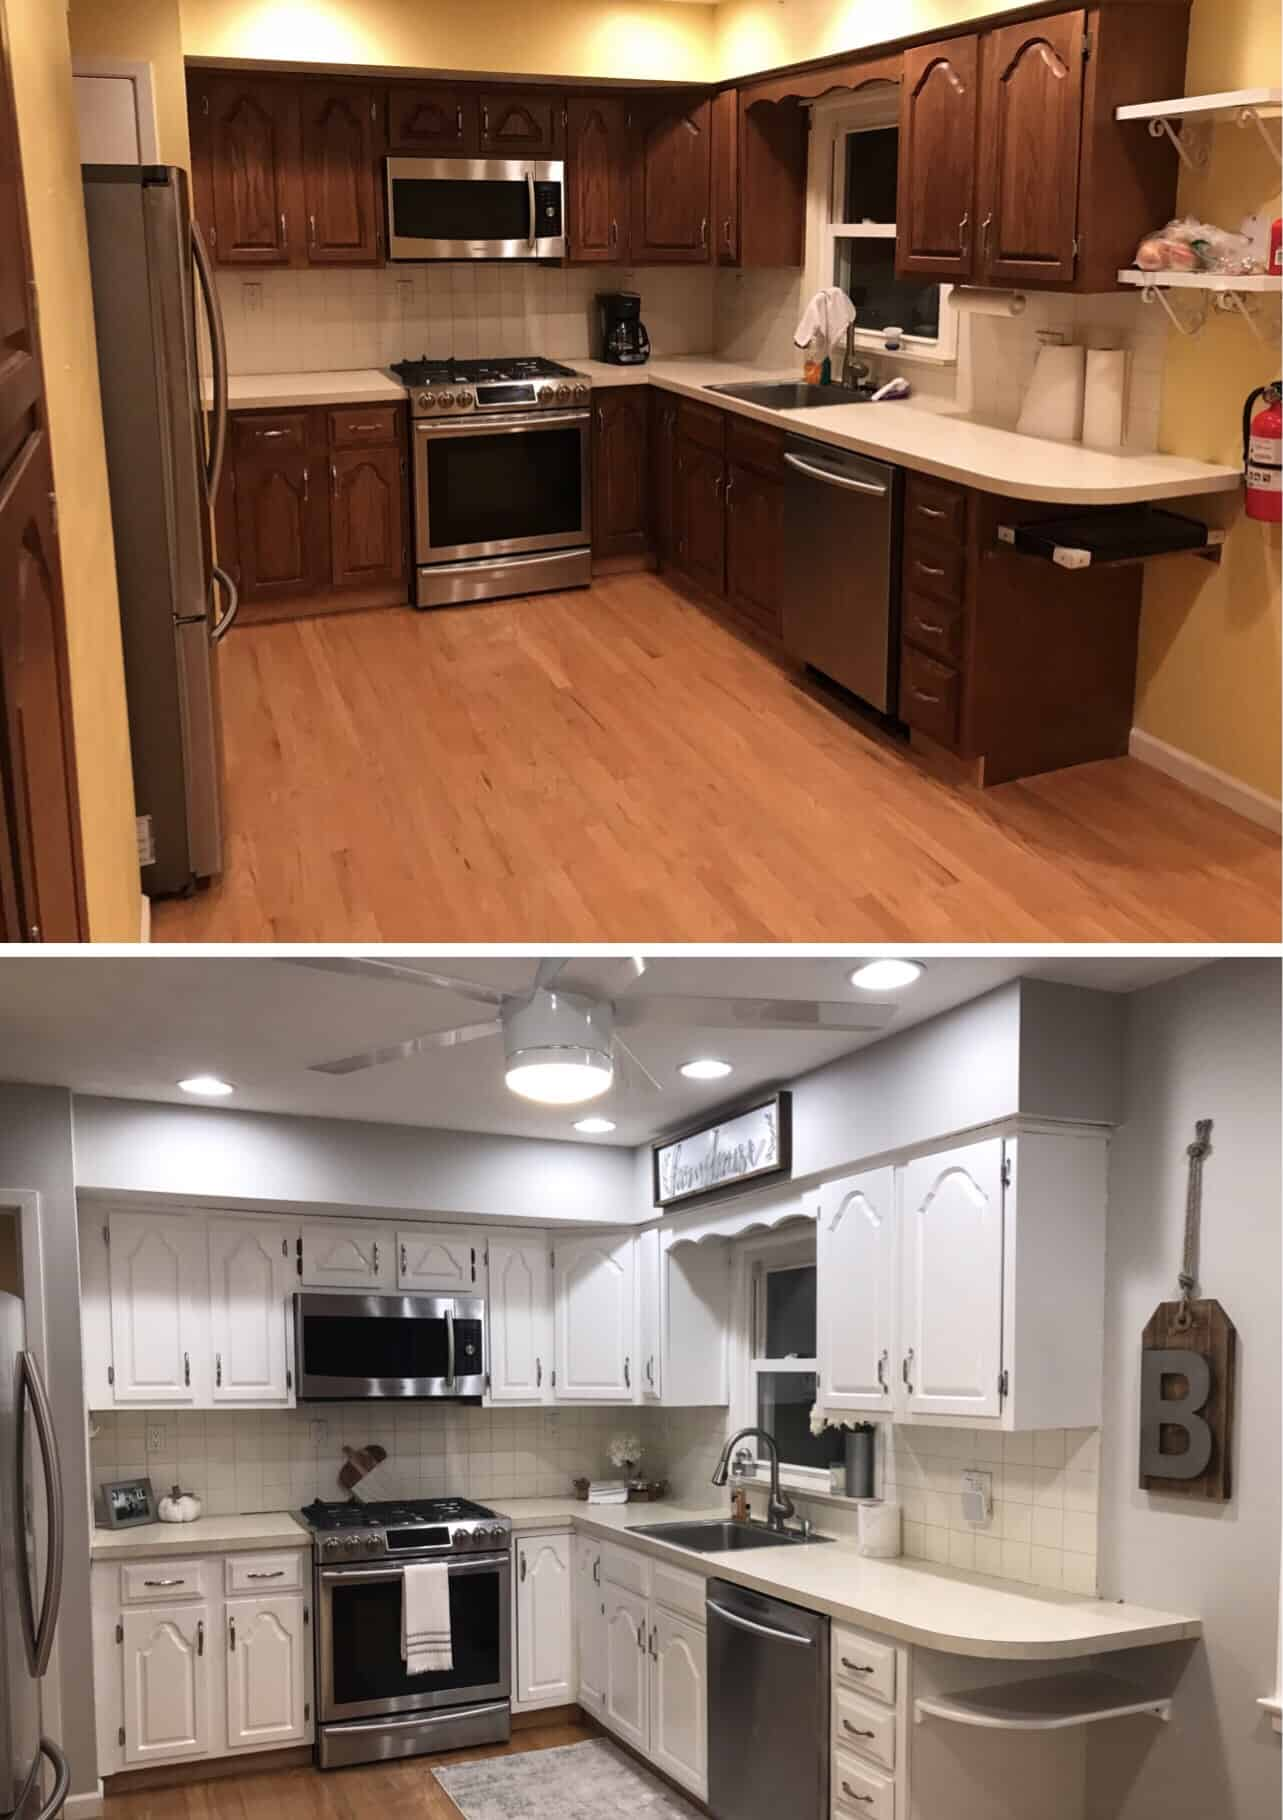 Before and after, Home decor, Interior design, Interior decor, Gray Paint, Sherwin Williams, Glam Decor, Redesign, Interior, Interior design, Home inspo, Decor inspo, cabinet transformation